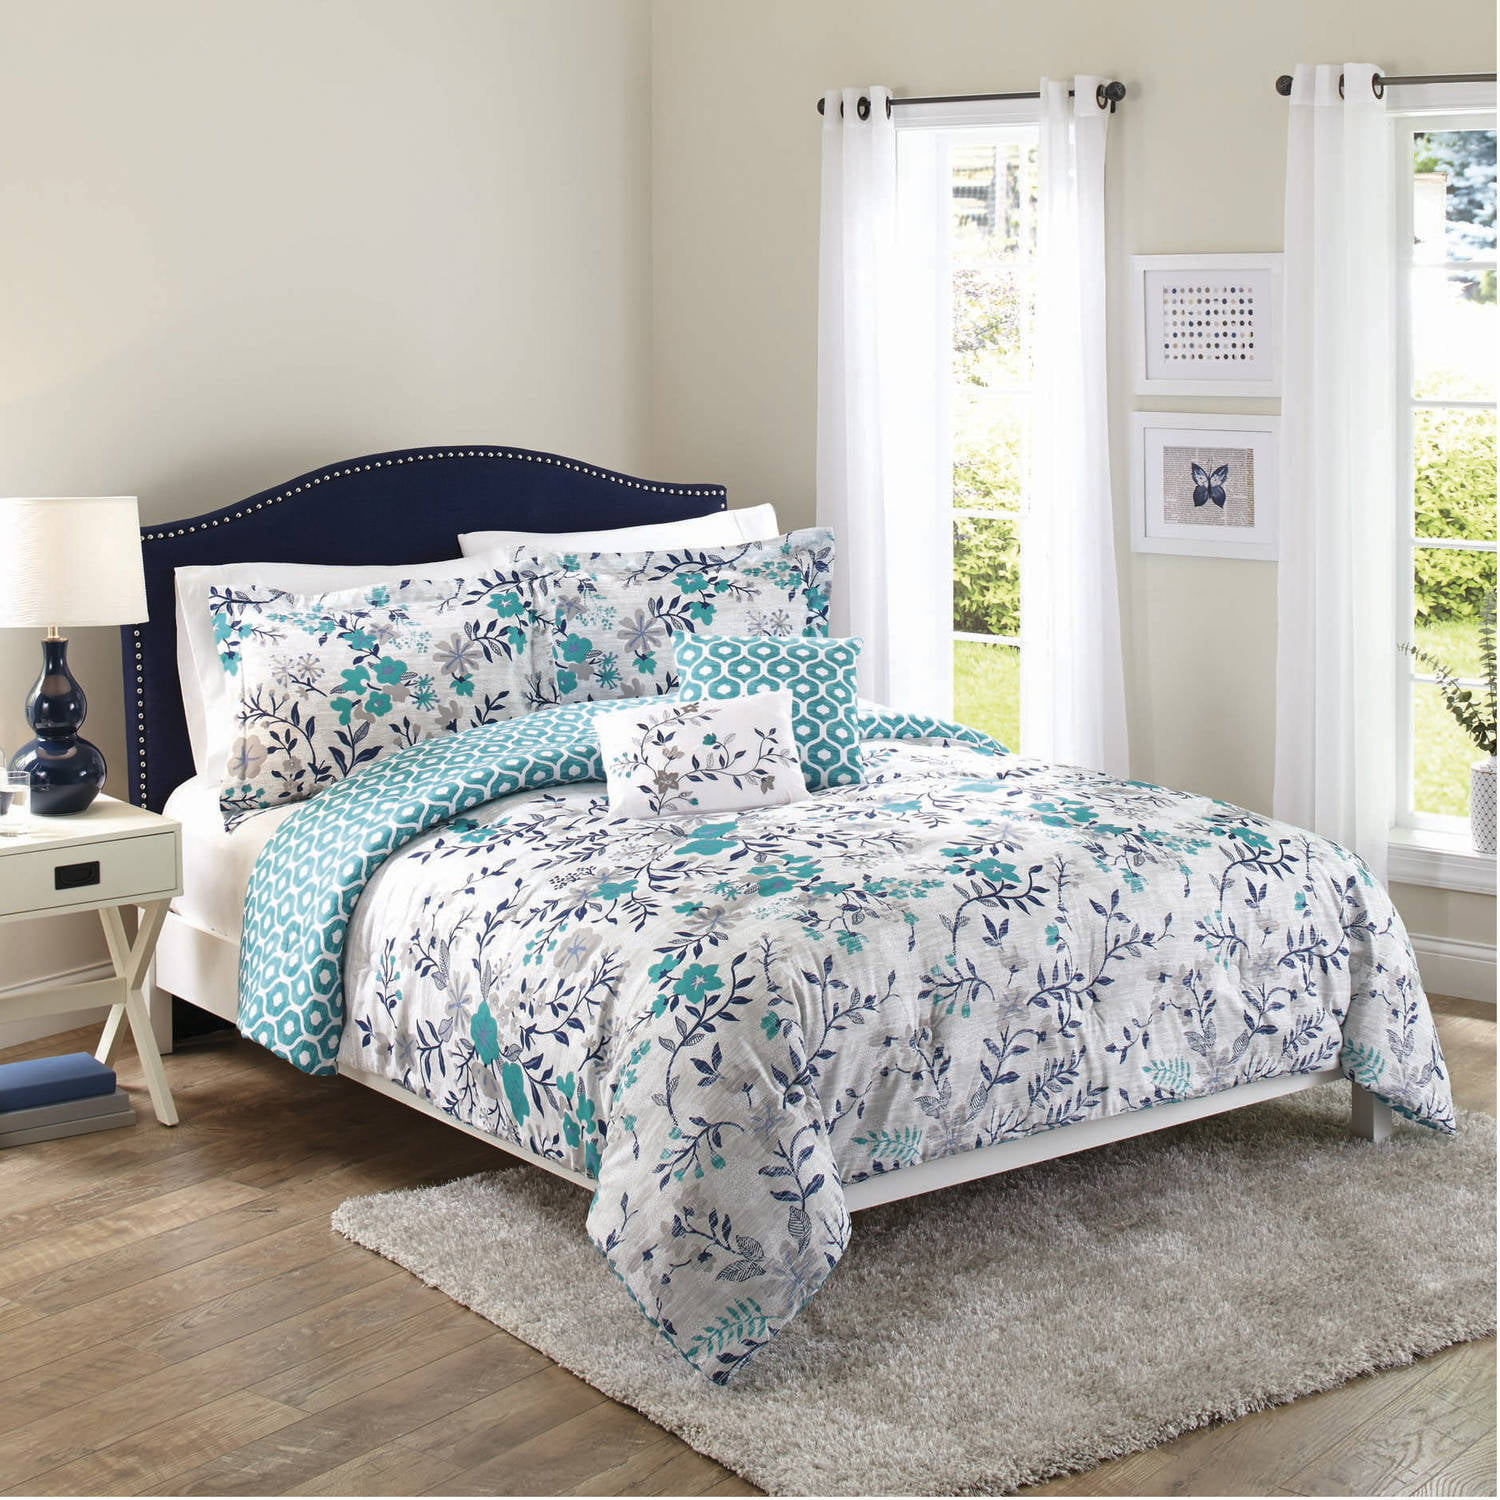 Better Homes And Gardens Teal Flowers, 5 Piece Set   Walmart.com